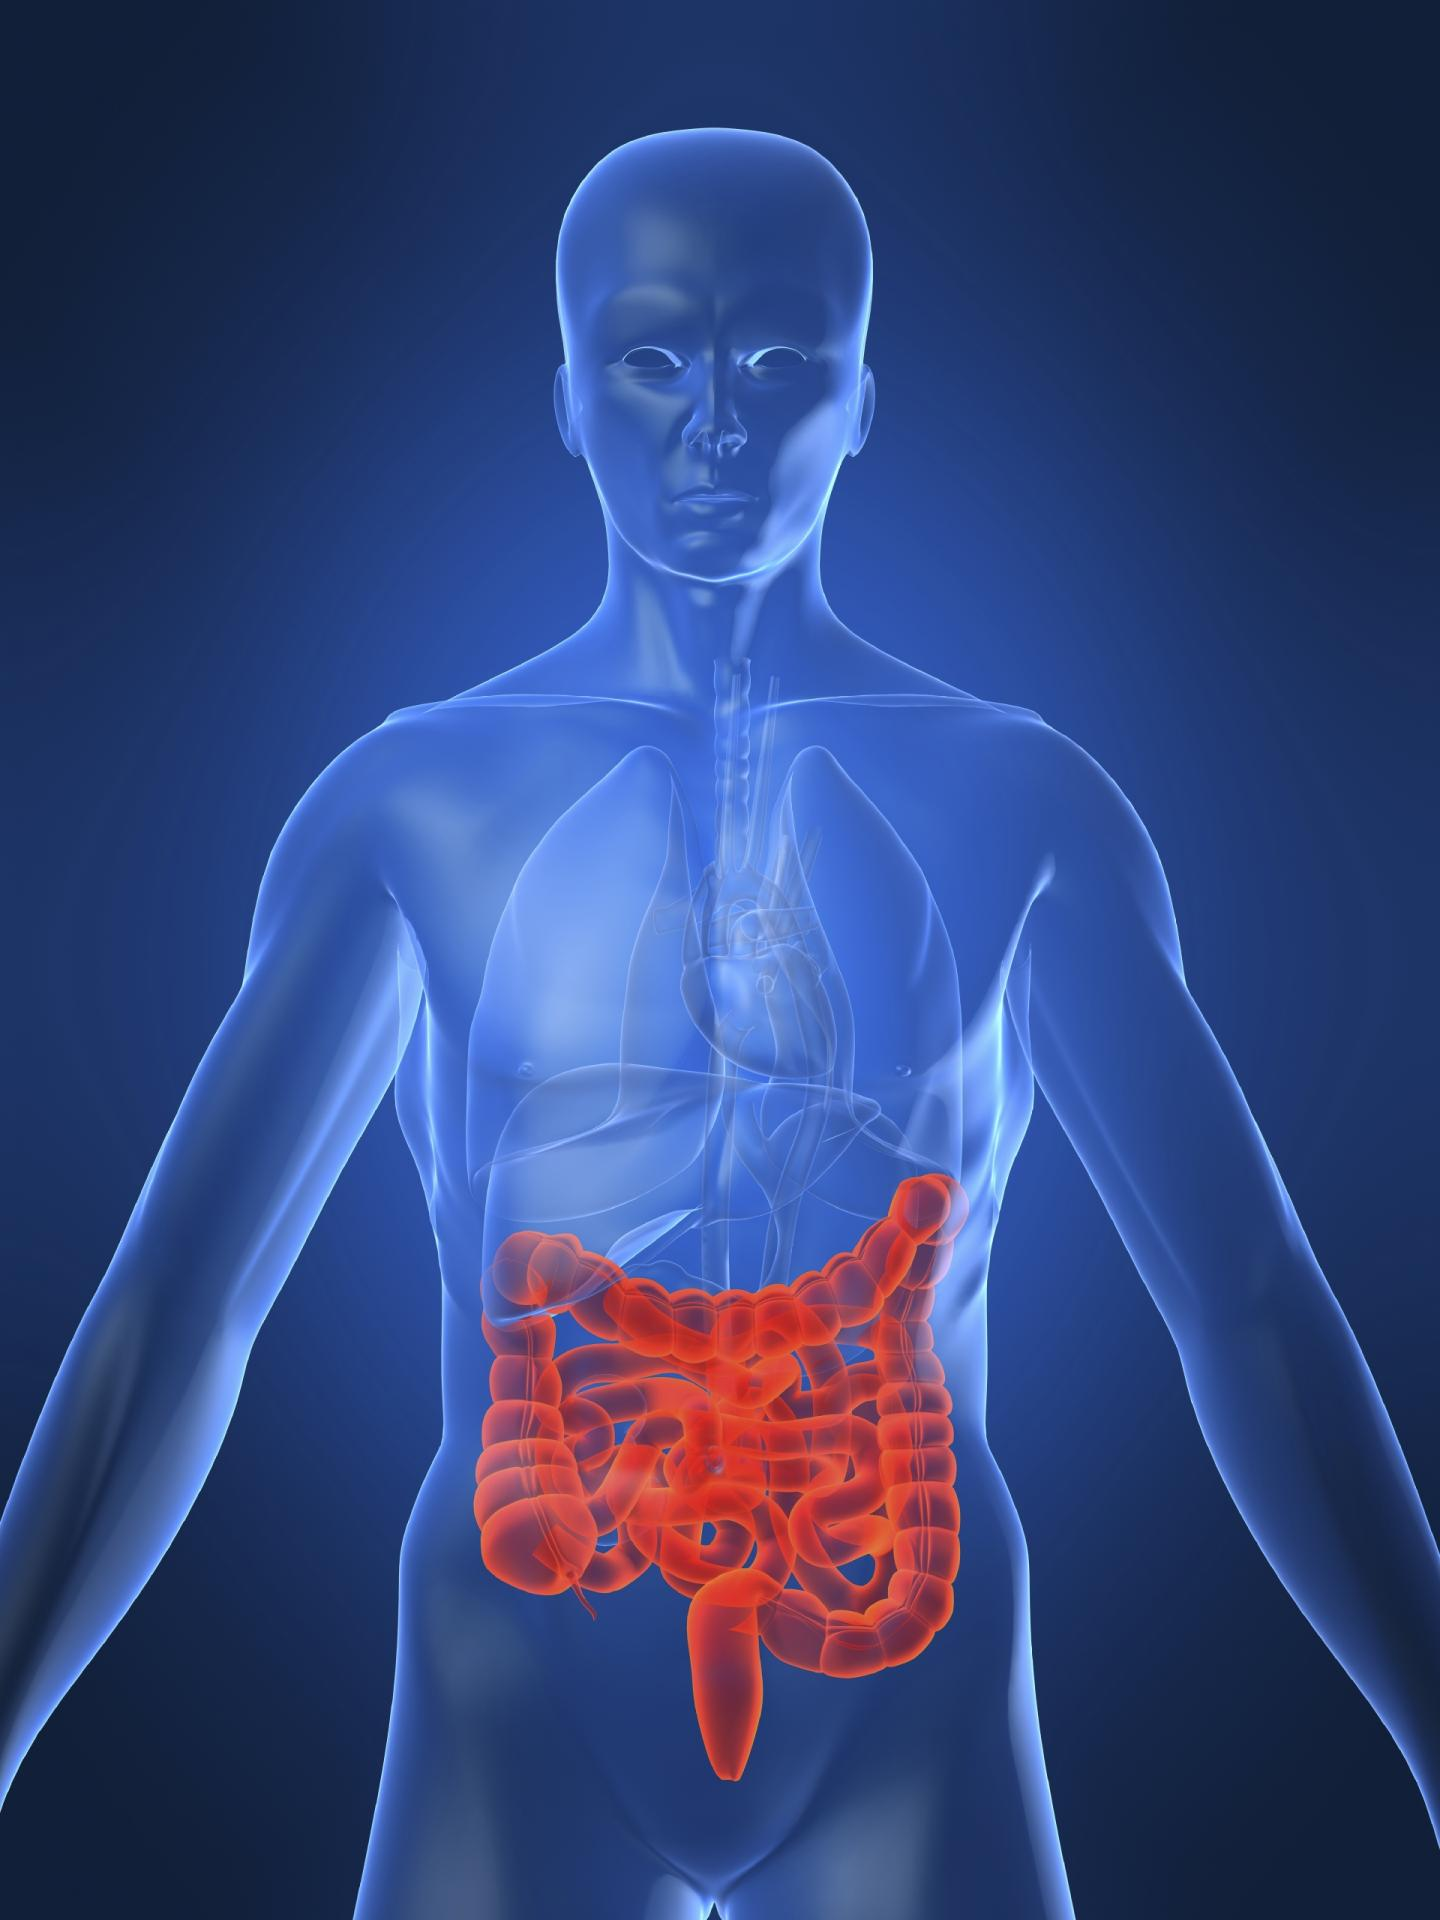 What are the symptoms of Crohns disease How is it diagnosed